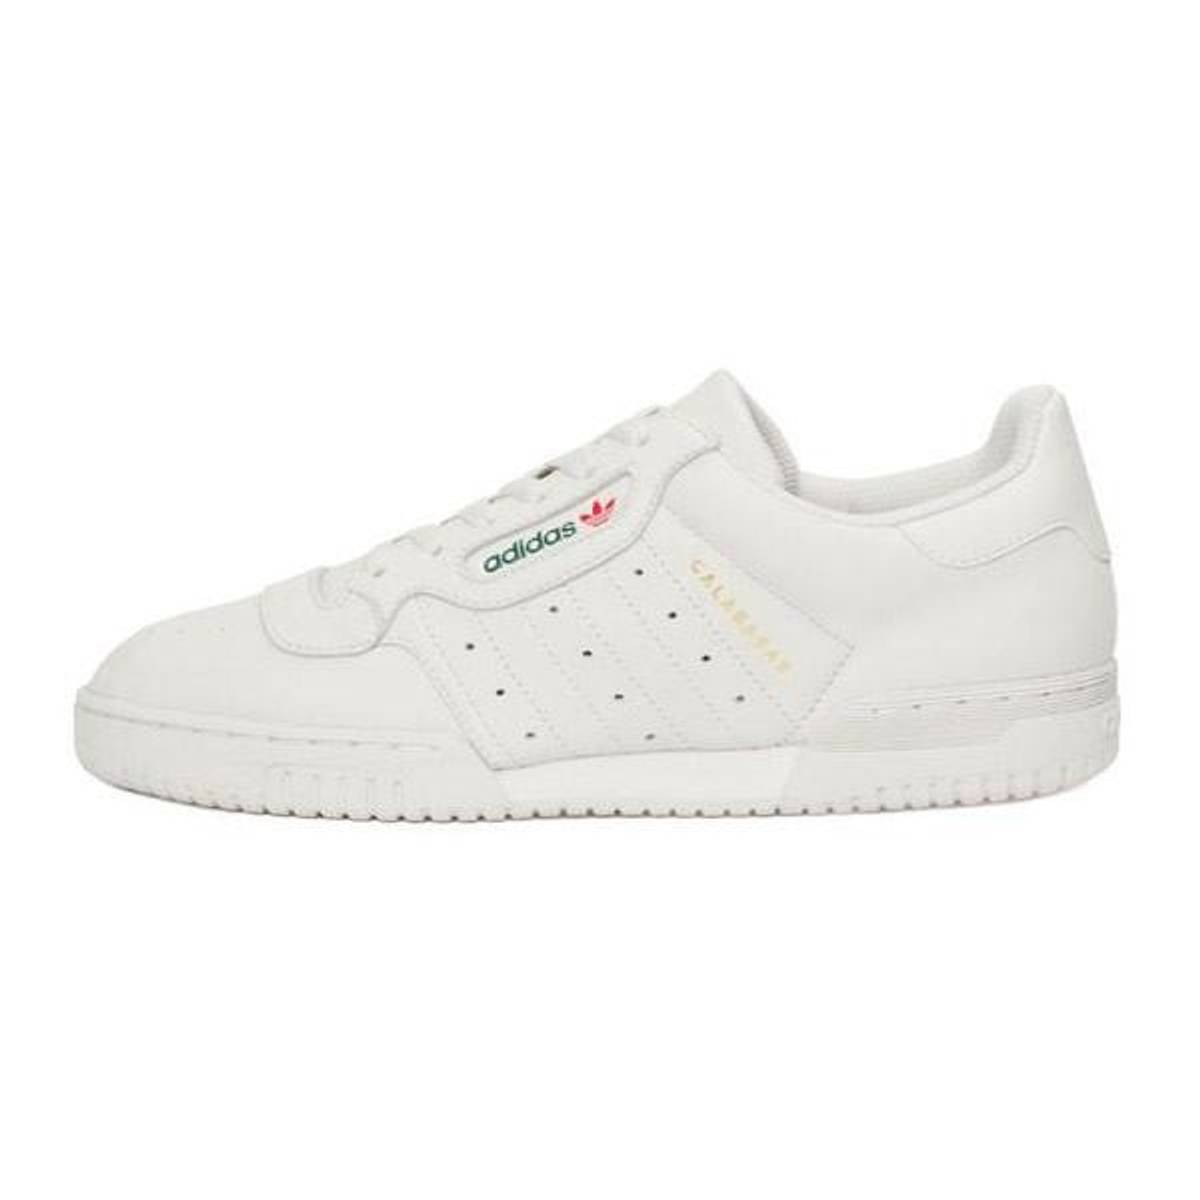 2c22a16123230 Adidas Yeezy Powerphase Size 10 - Low-Top Sneakers for Sale - Grailed